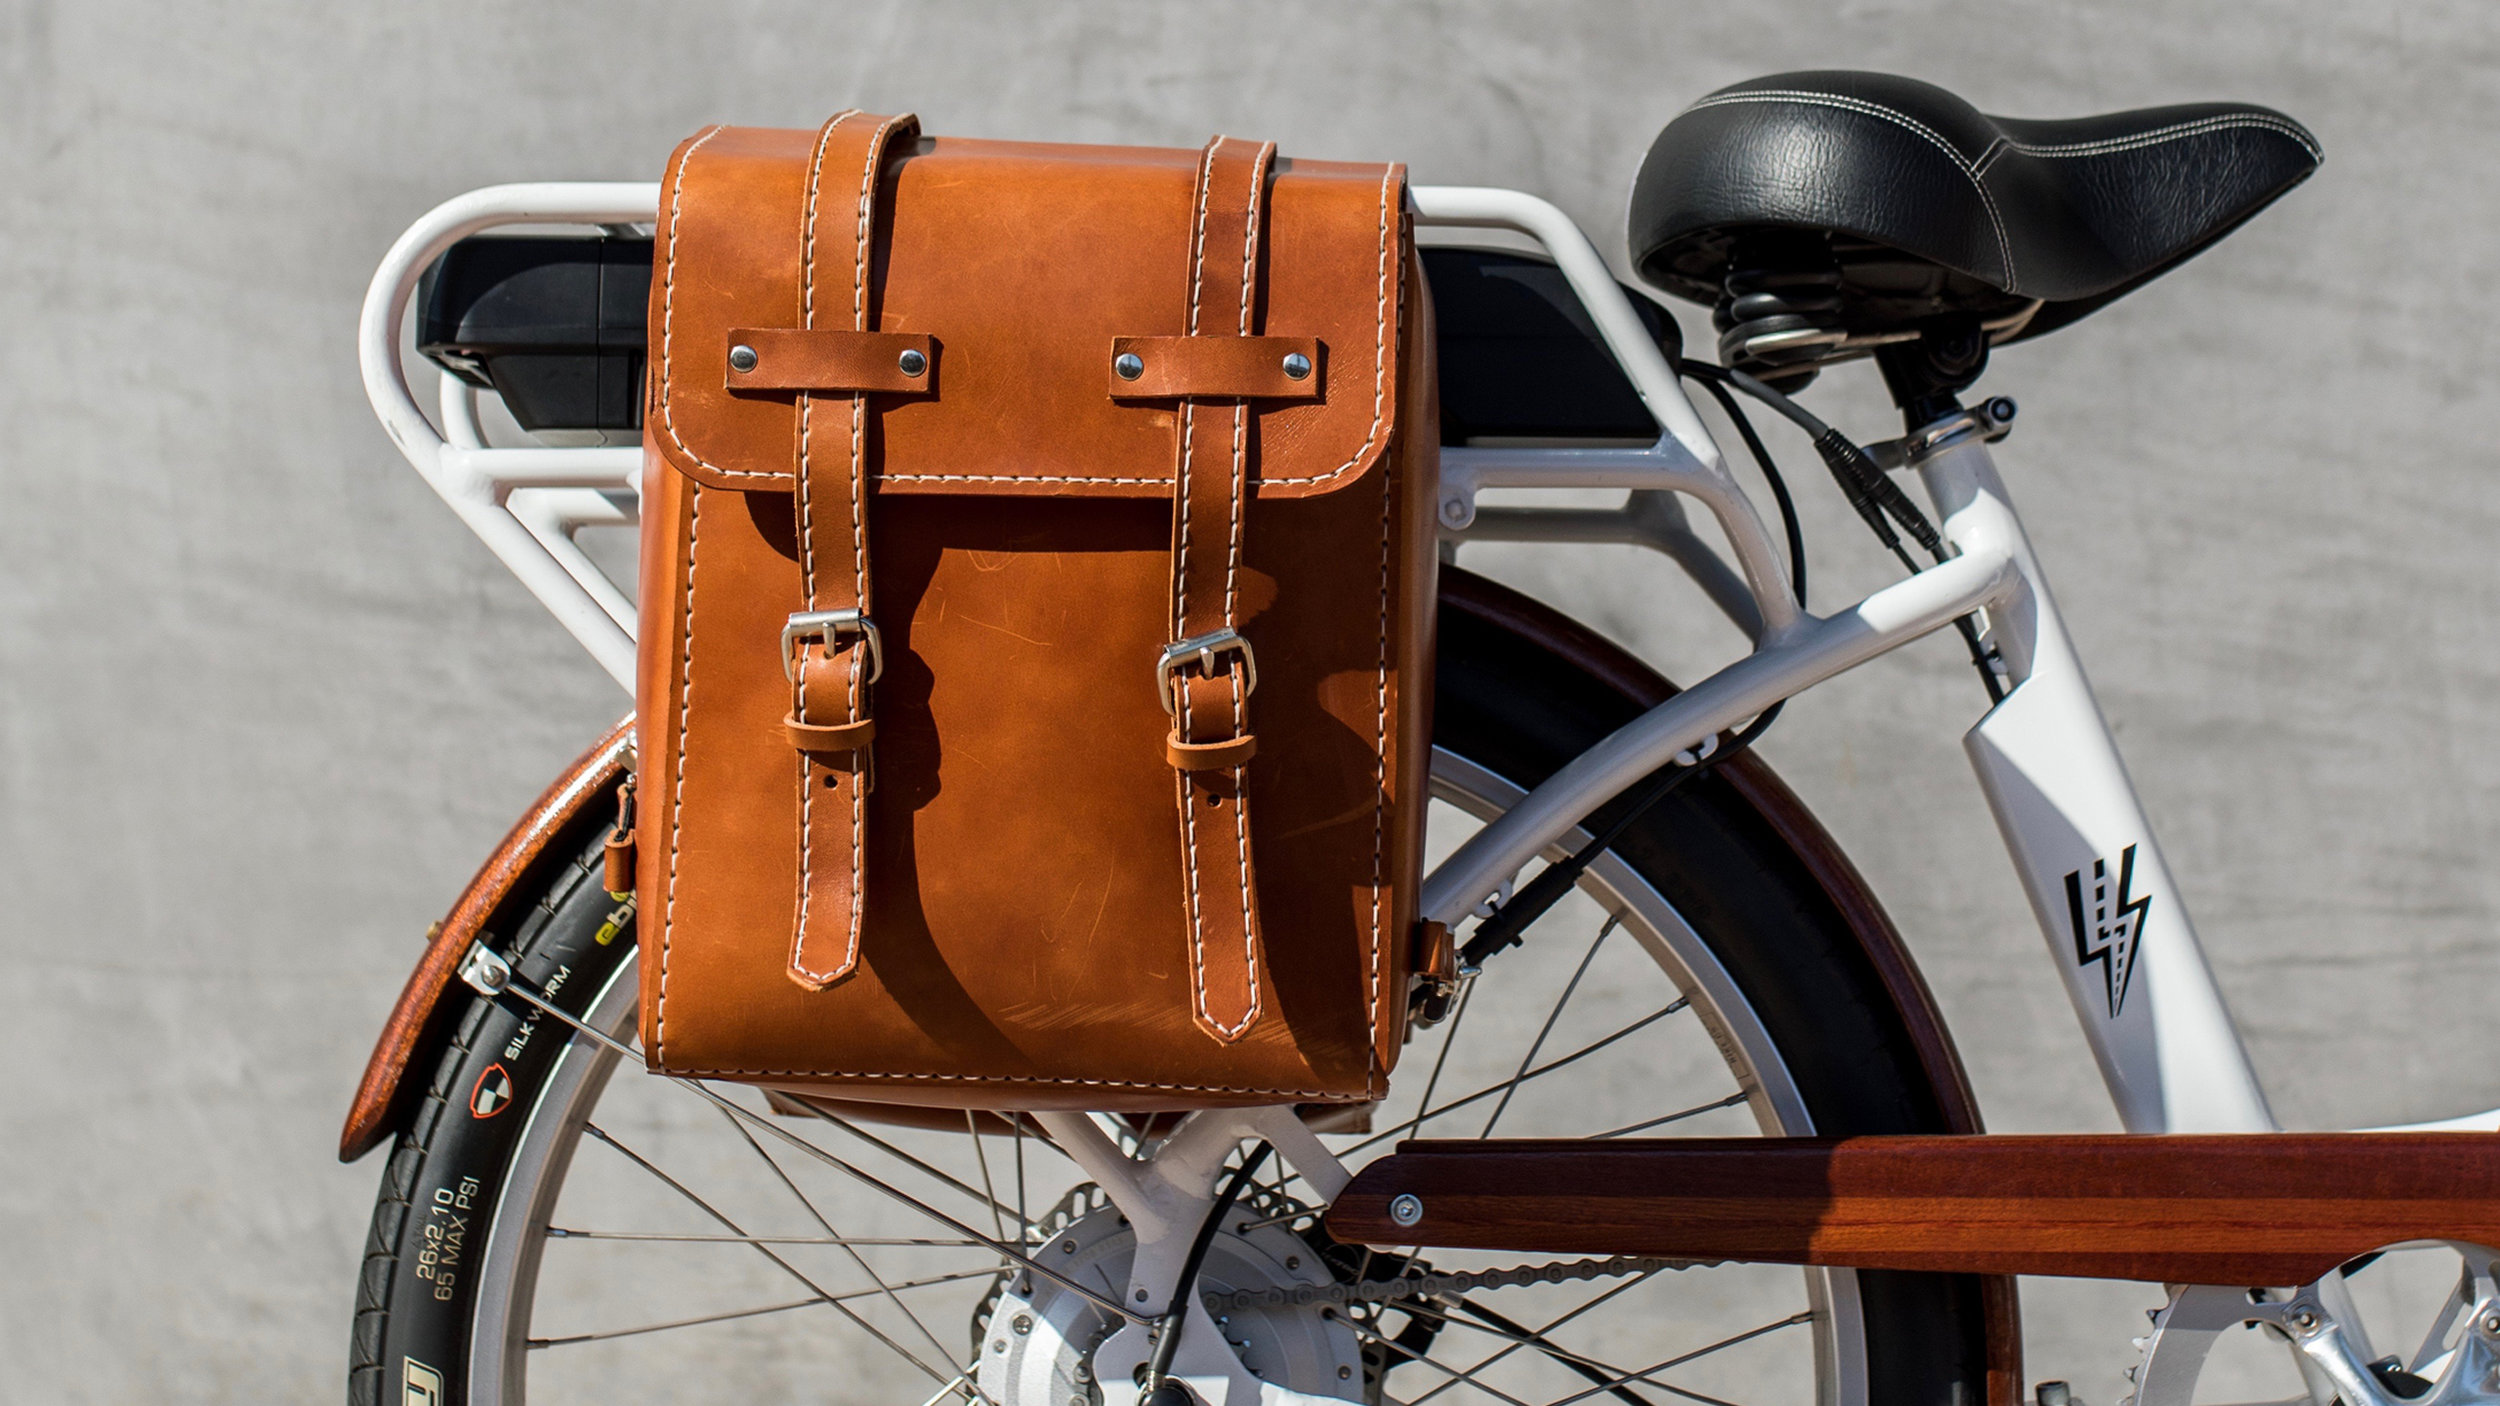 electrified-reviews-electric-bike-company-model-c-electric-bike-review-leather-saddle-bags-brown.jpg